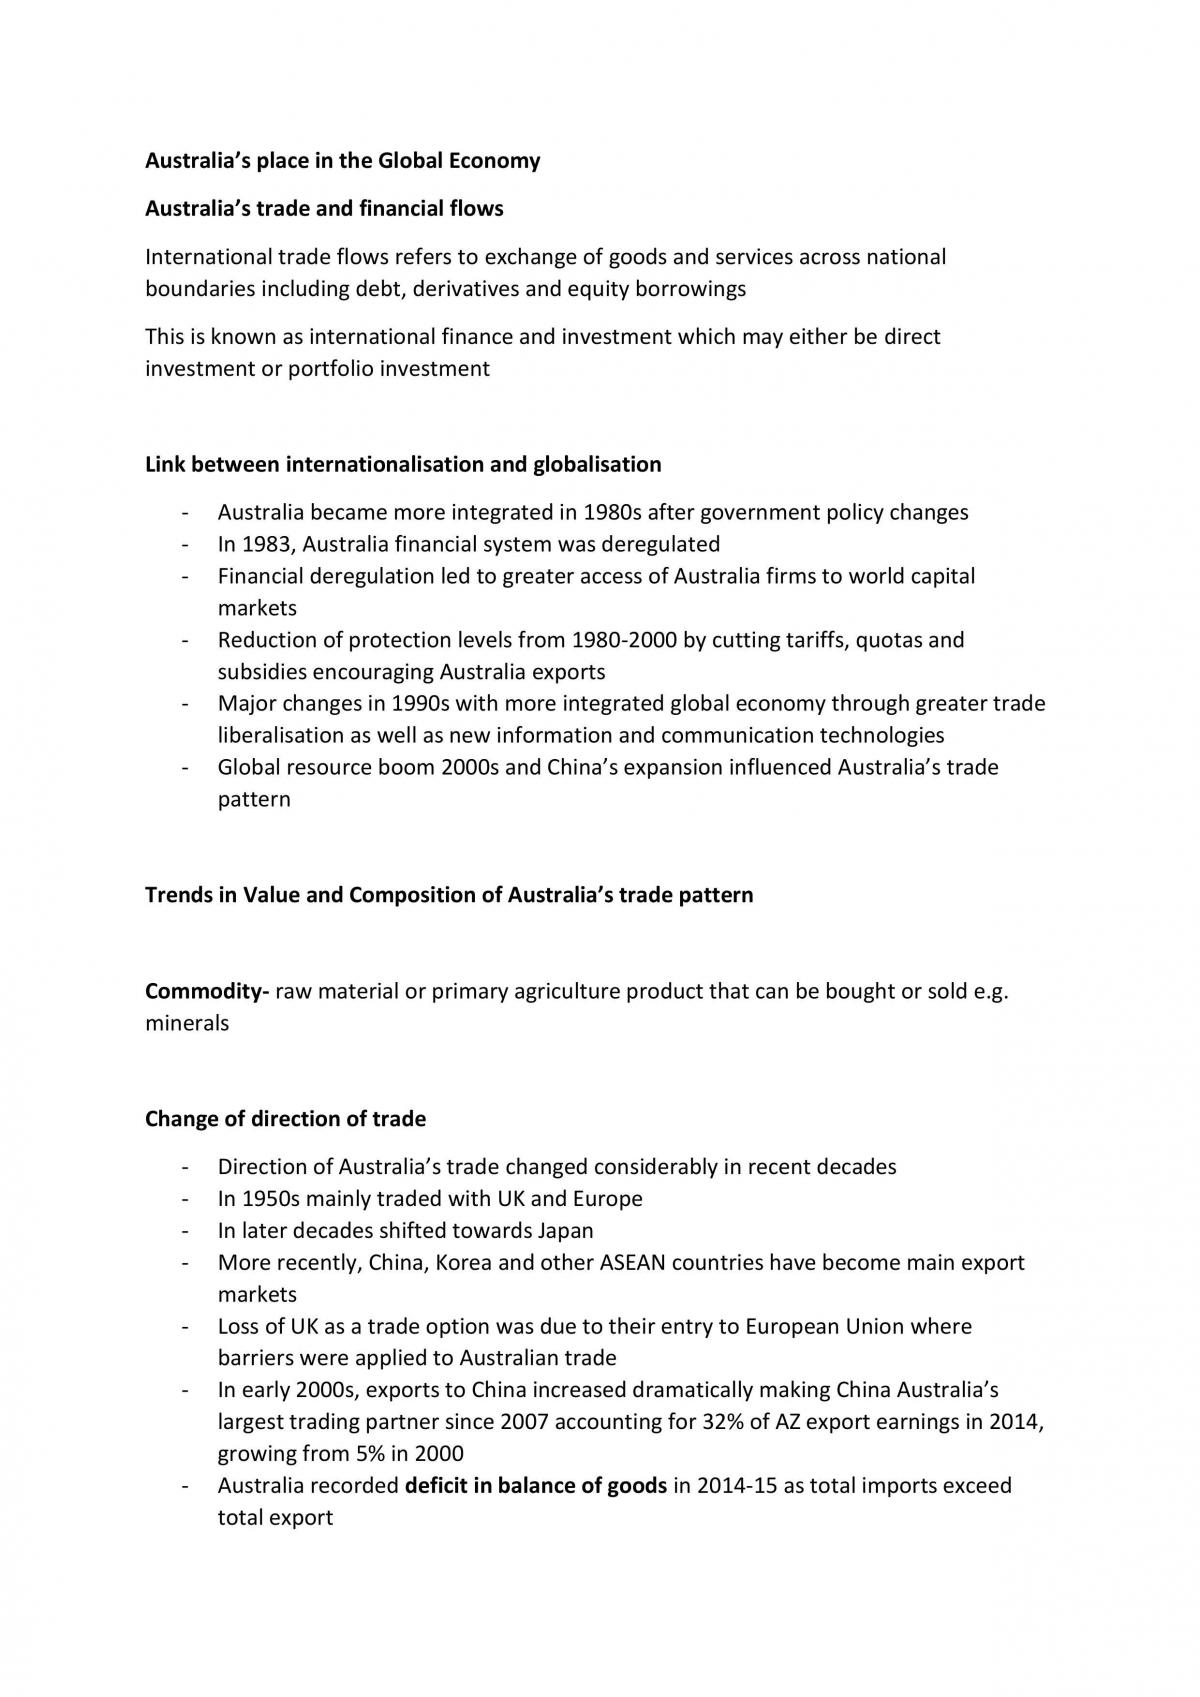 Australia's place in the global economy full notes - Page 1